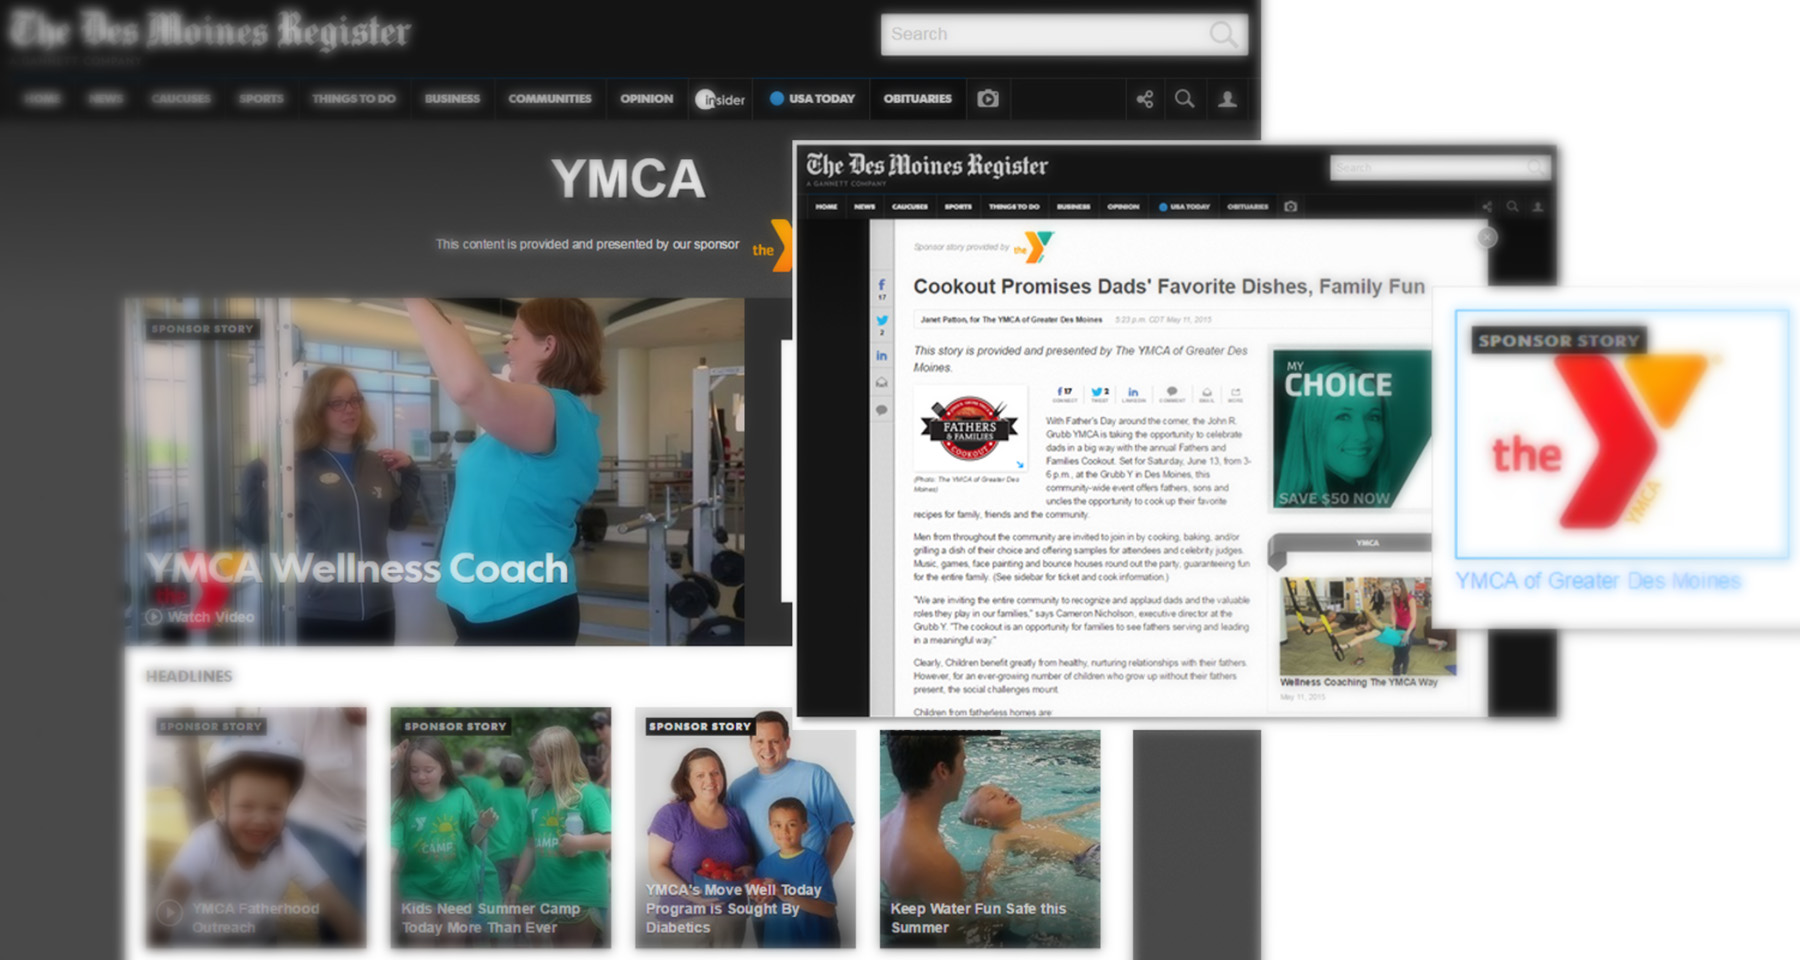 Register Media uses data, lifestyle-based marketing to boost YMCA memberships